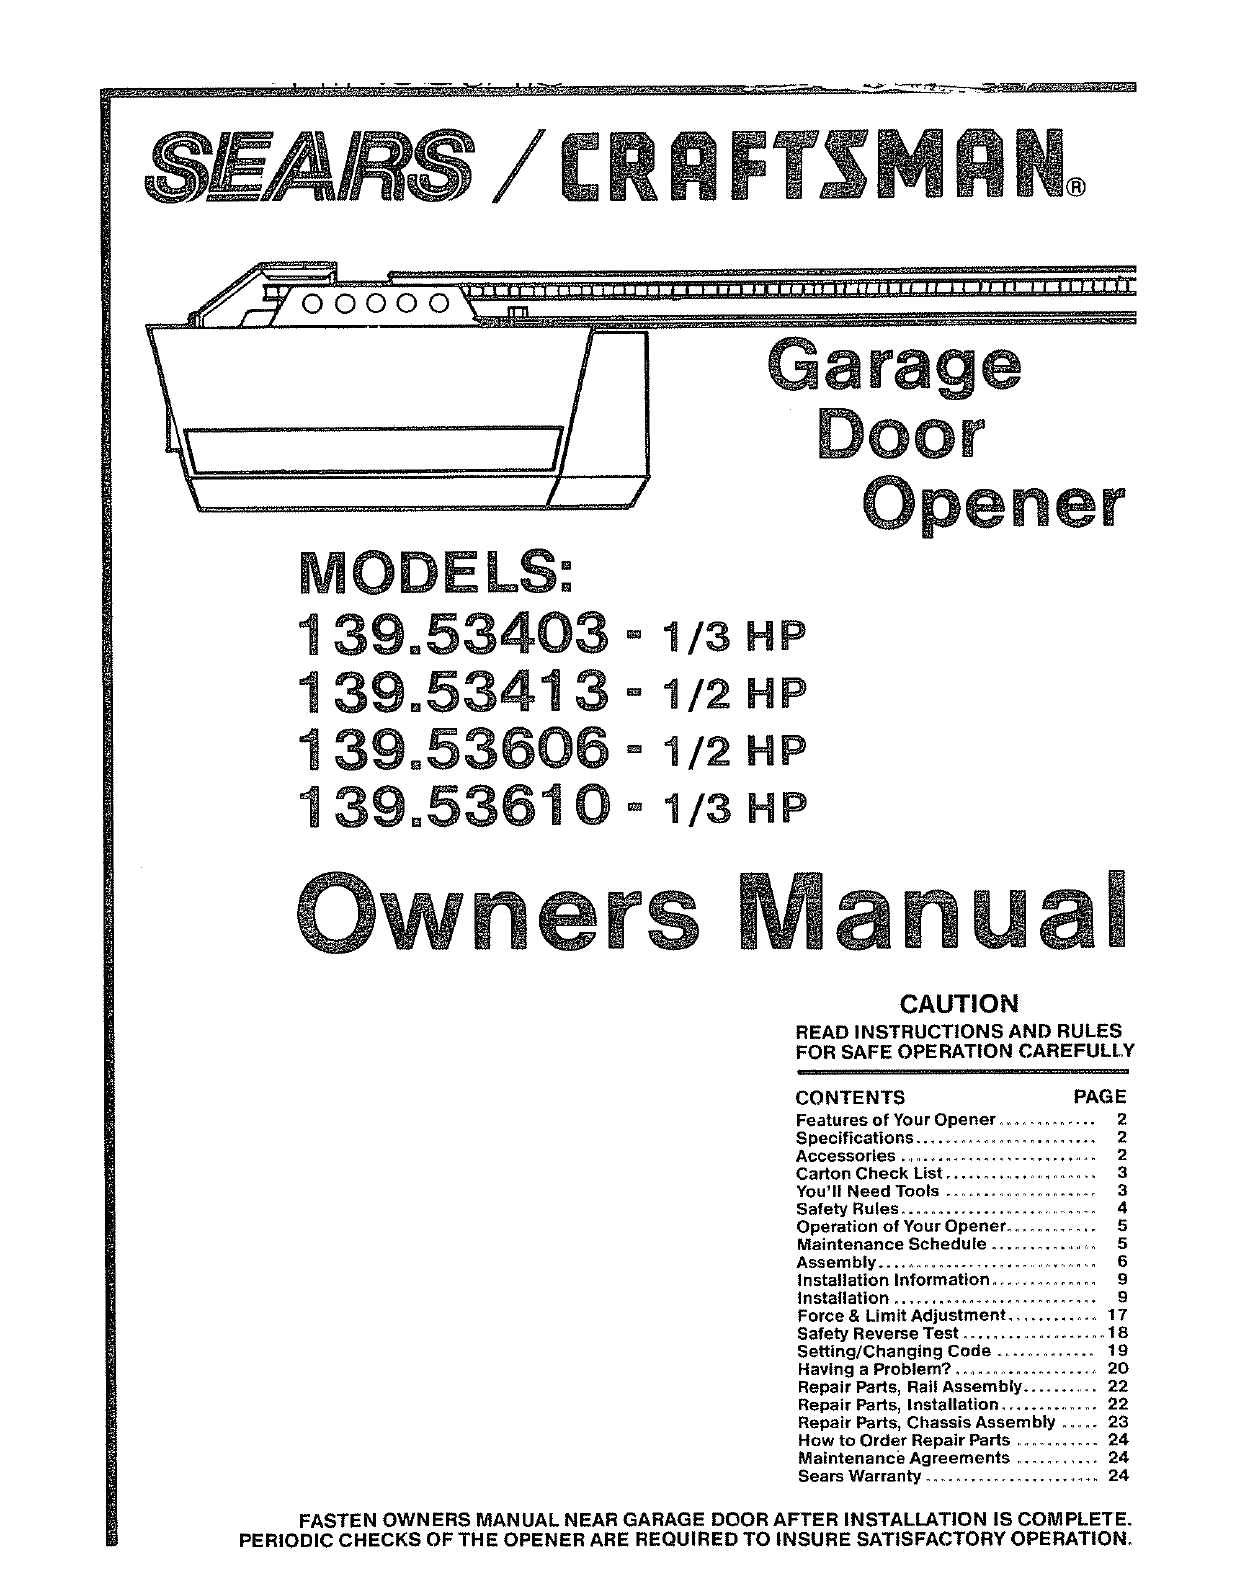 4e24e83f 95d3 4892 ae01 8deb09c598a8 bg1 craftsman garage door opener 139 53403 user guide manualsonline com garage door opener wiring diagram at gsmx.co